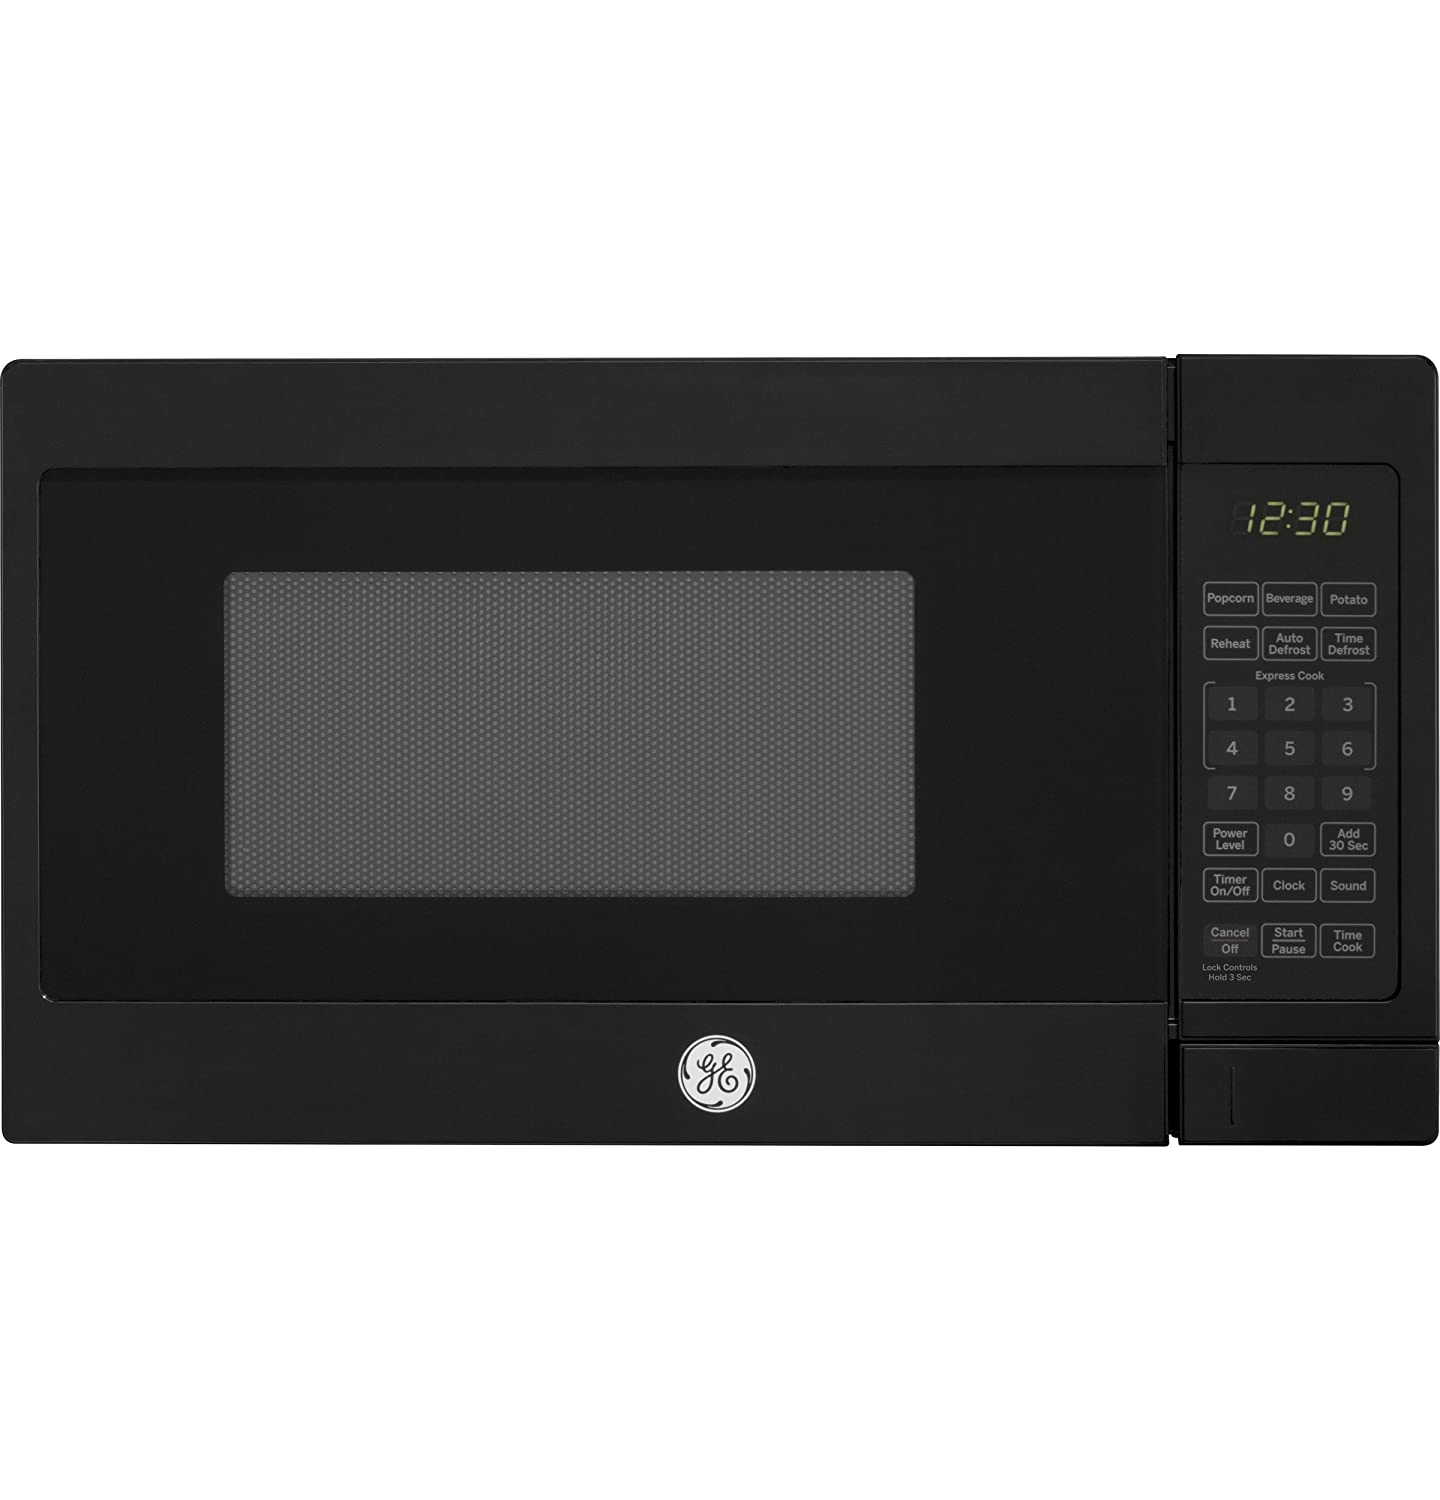 GE APPLIANCES JES1072DMBB 0.7CUFT Black Countertop Microwave 0.7-Cubic Feet